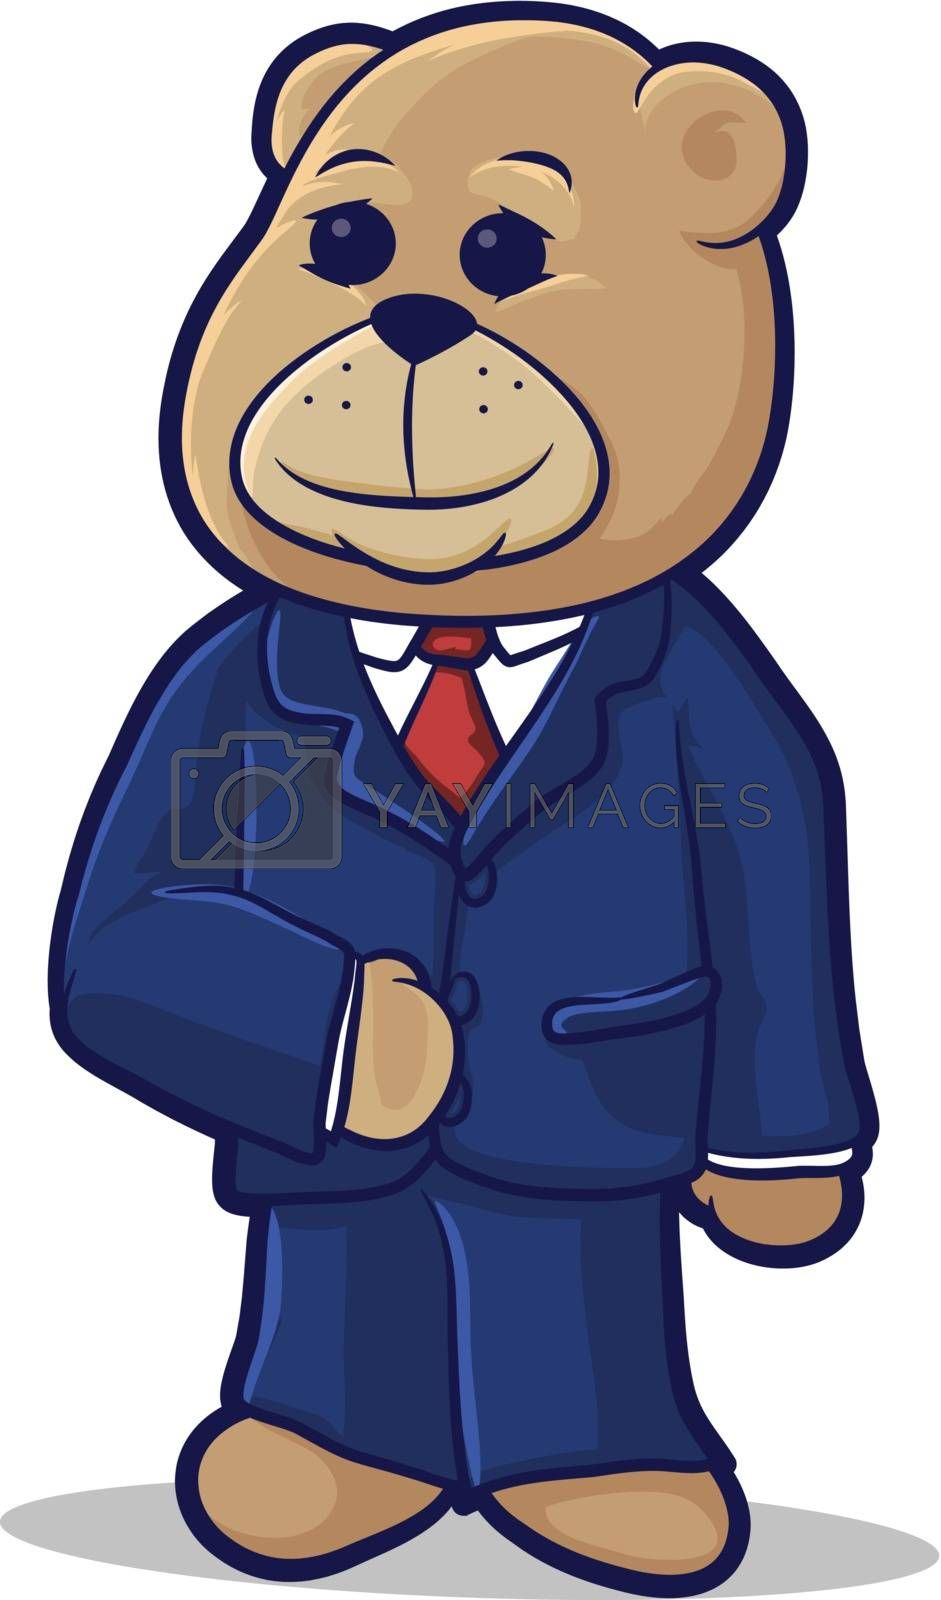 Royalty free image of Business Bear by graphicgeoff